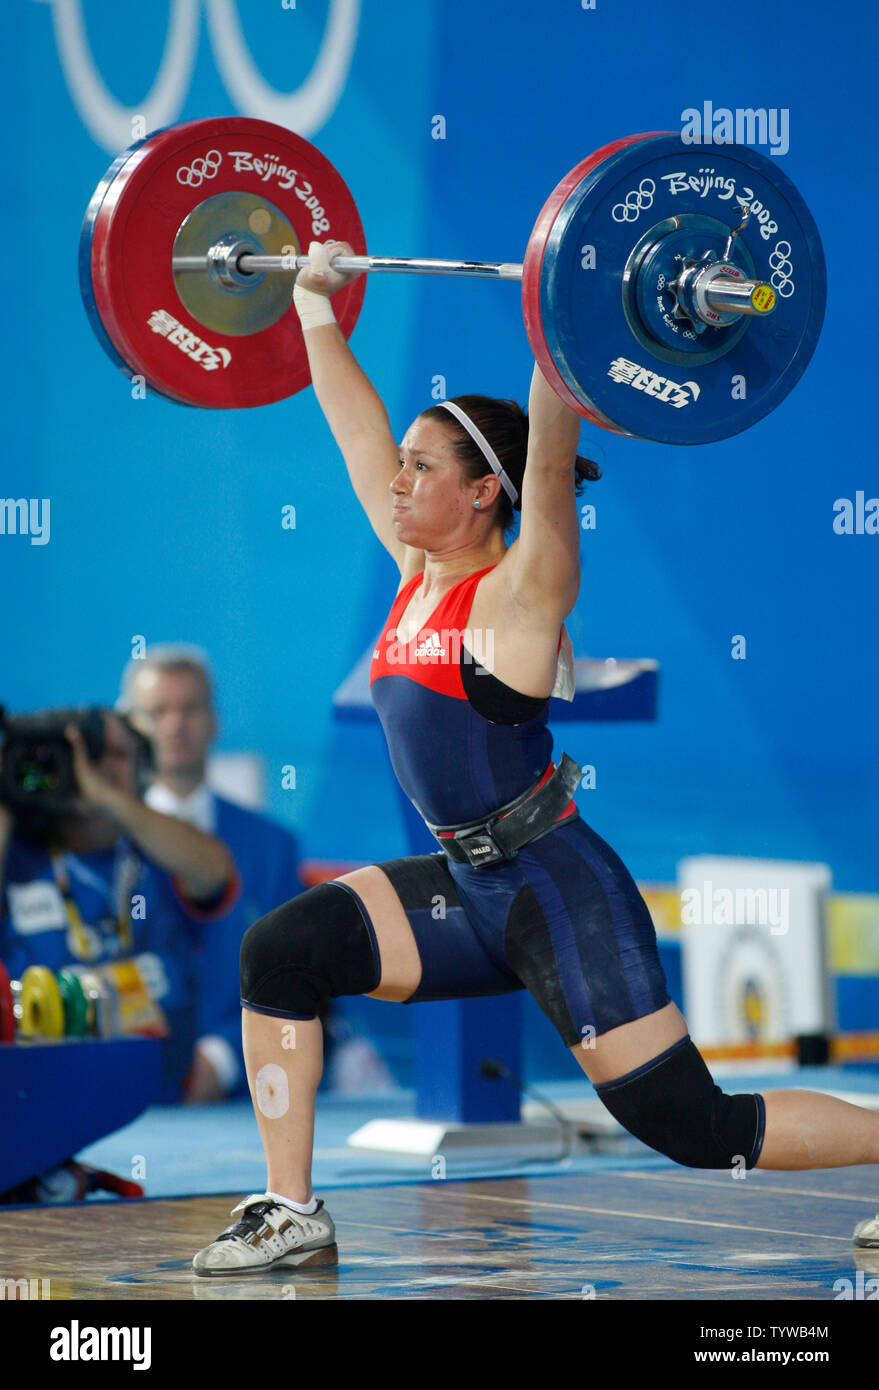 Weightlifting Olympics Stock Photos & Weightlifting ...